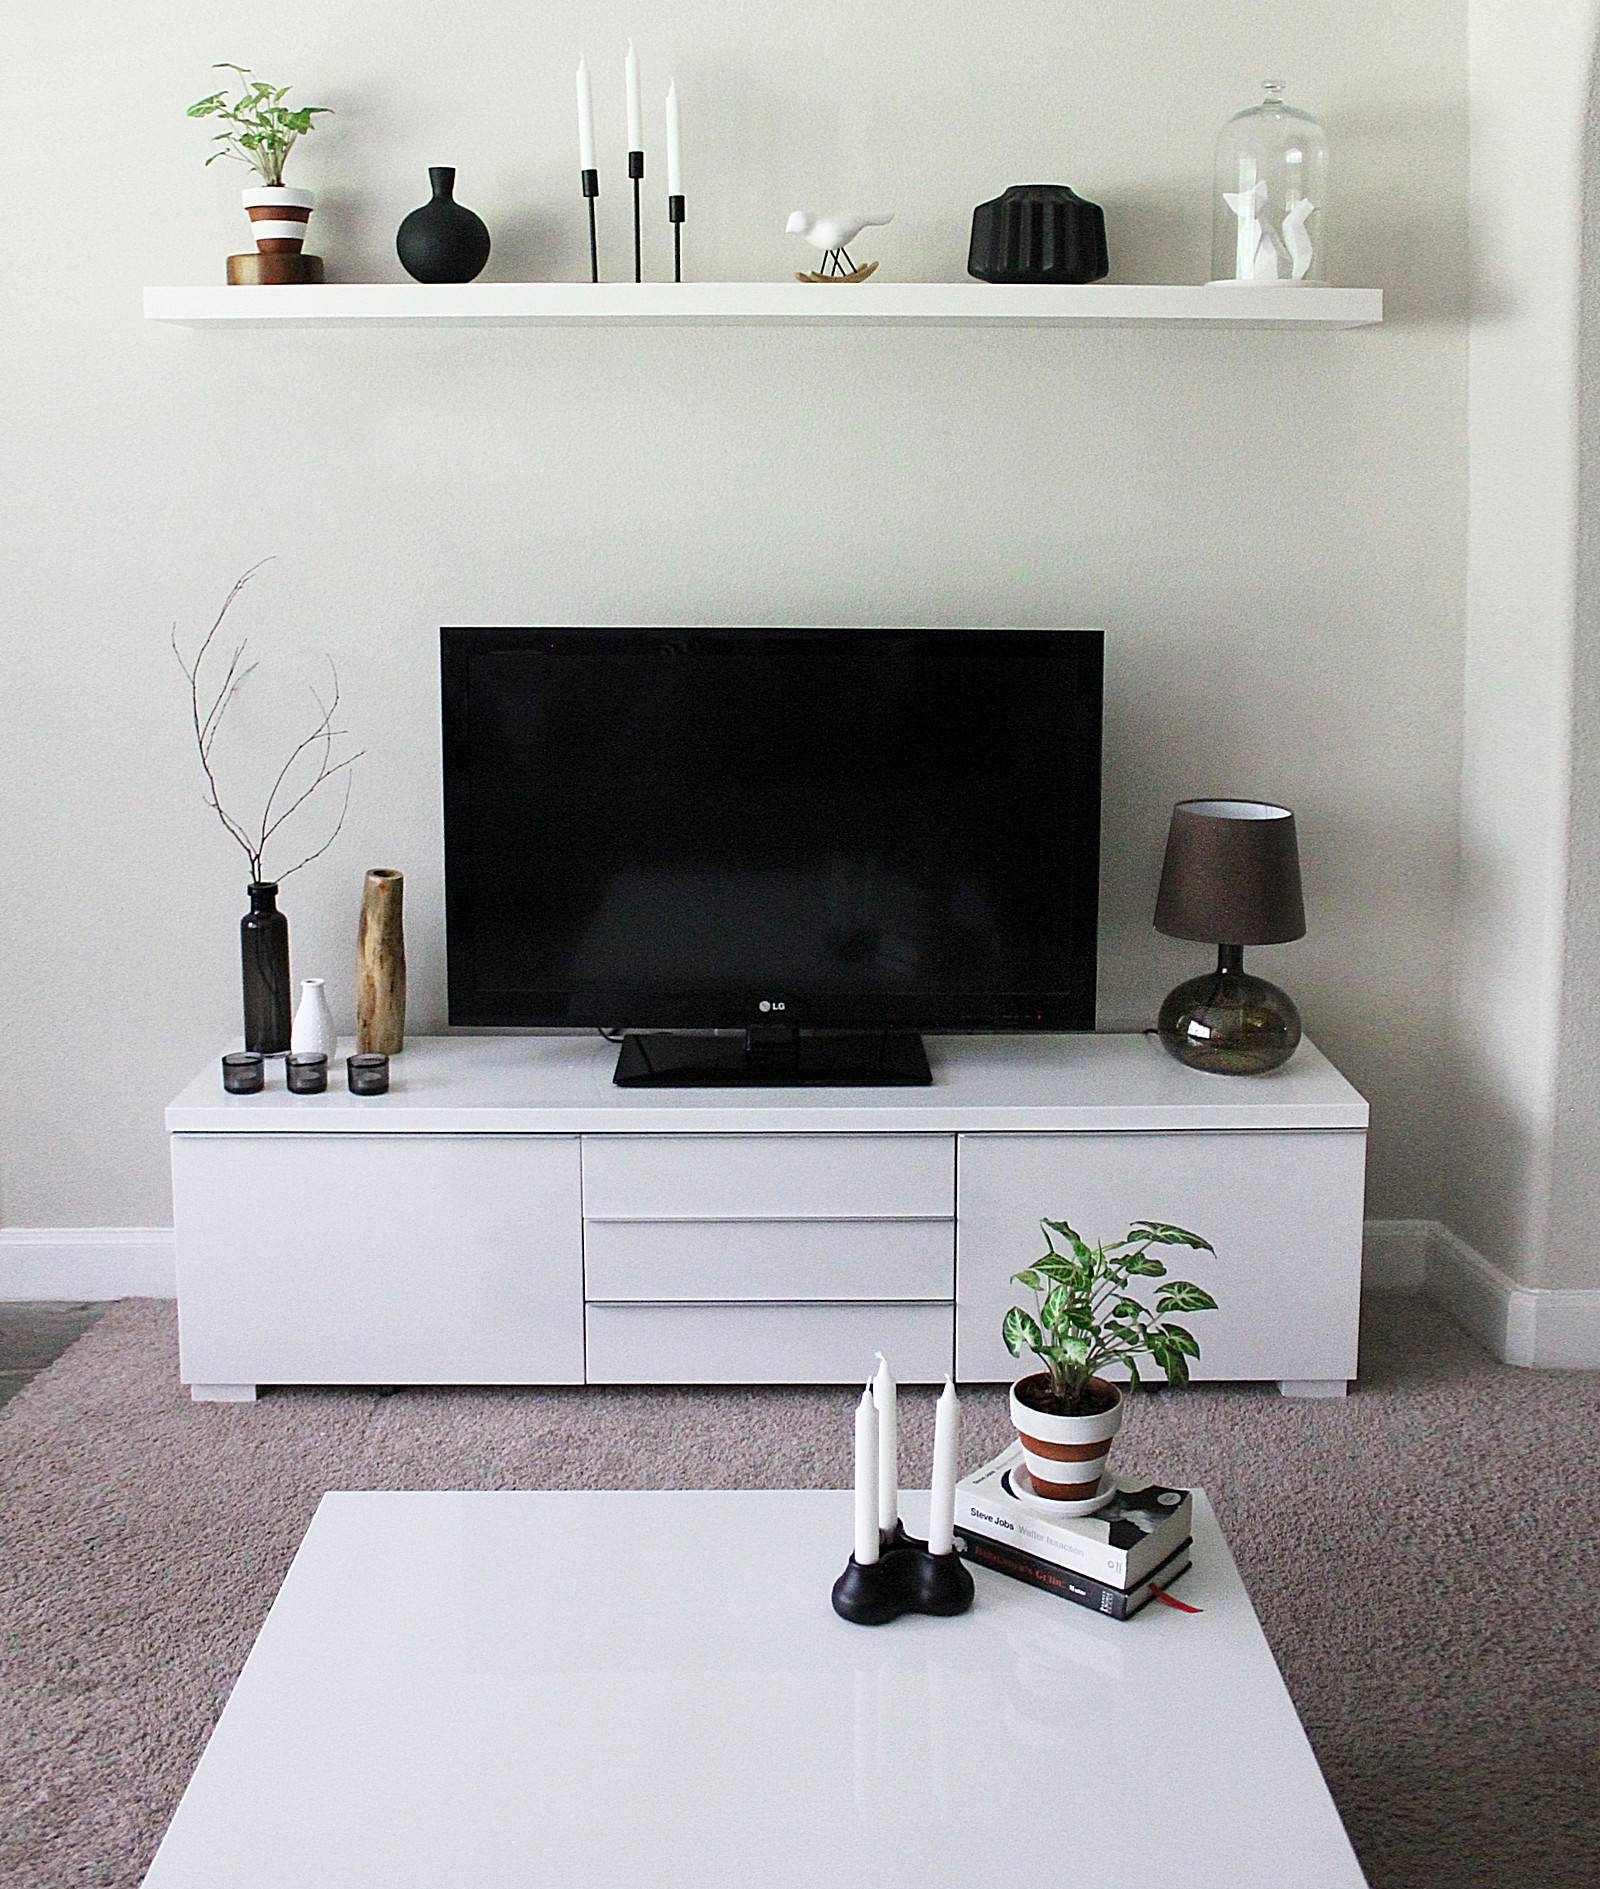 Tv Stands. 2017 Best Assembled White Corner Tv Stands Collection with regard to Tv Cabinet and Coffee Table Sets (Image 28 of 30)